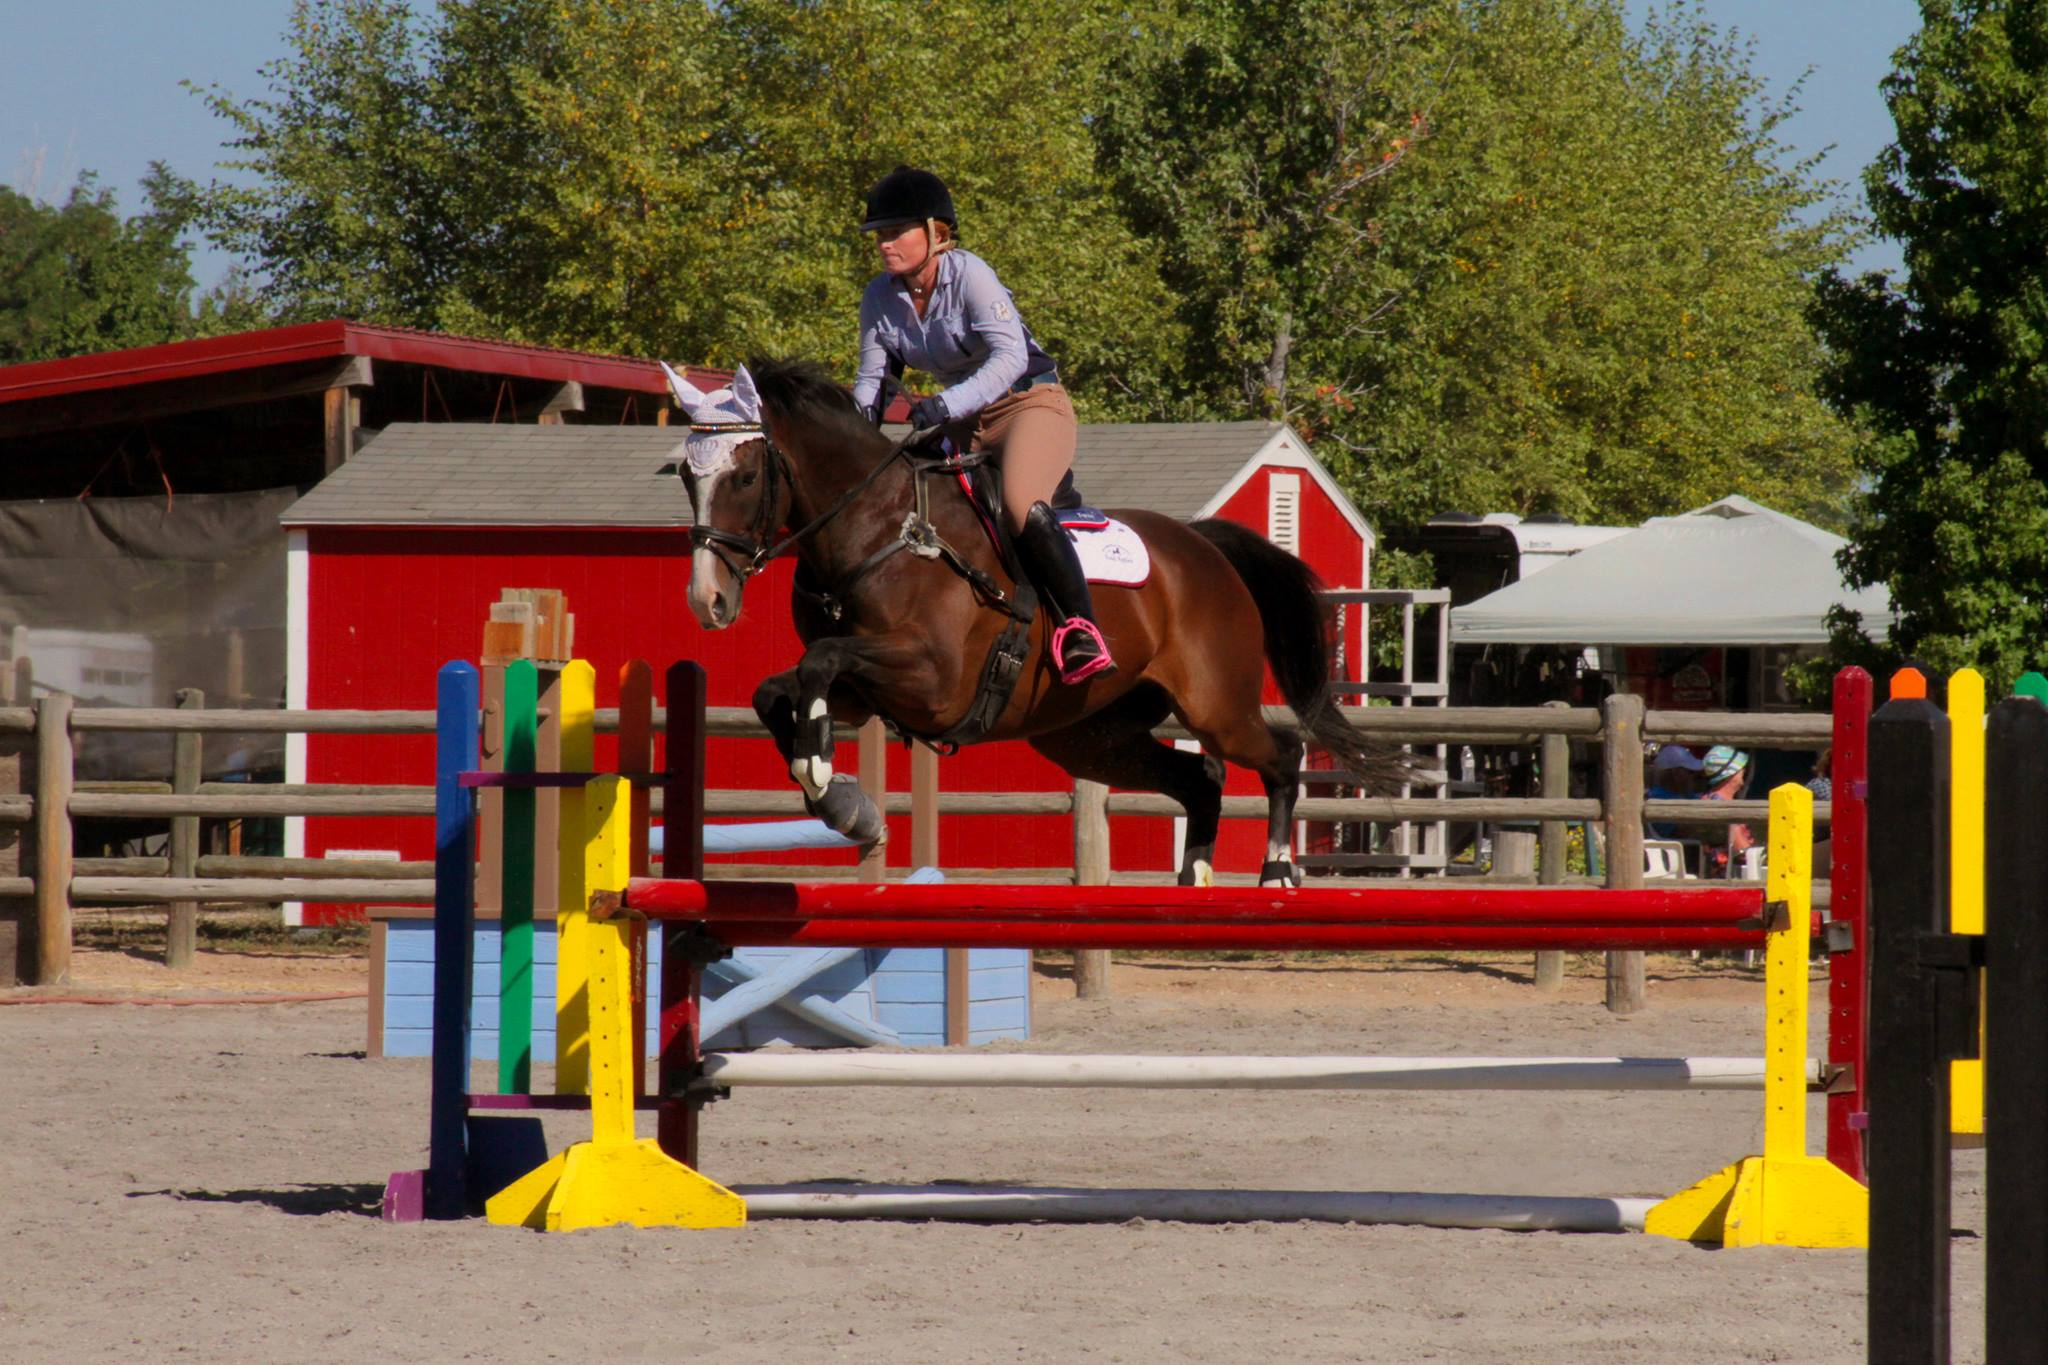 Prisoner jumping the jumps at another horse show PC: Alyssa